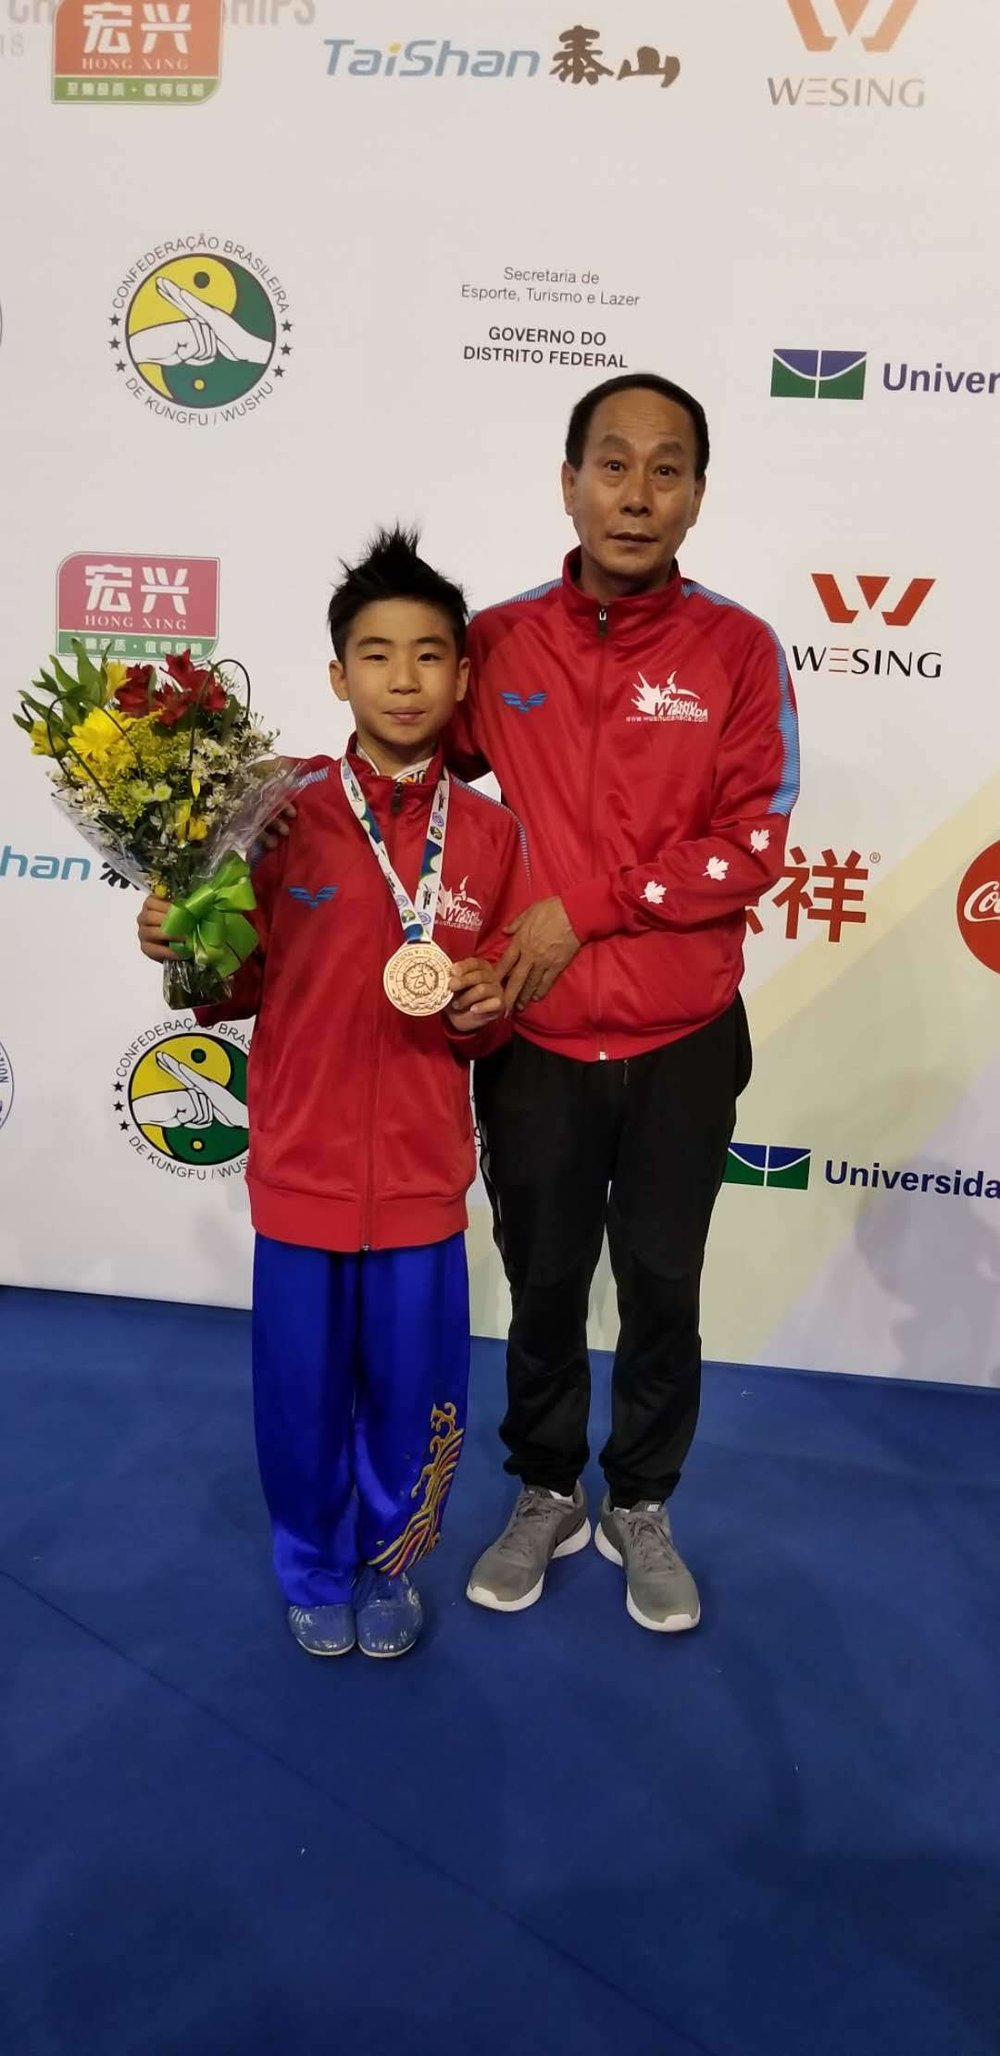 wayland-li-wushu-world-junior-wushu-brazil-team-canada-2018-26.jpg